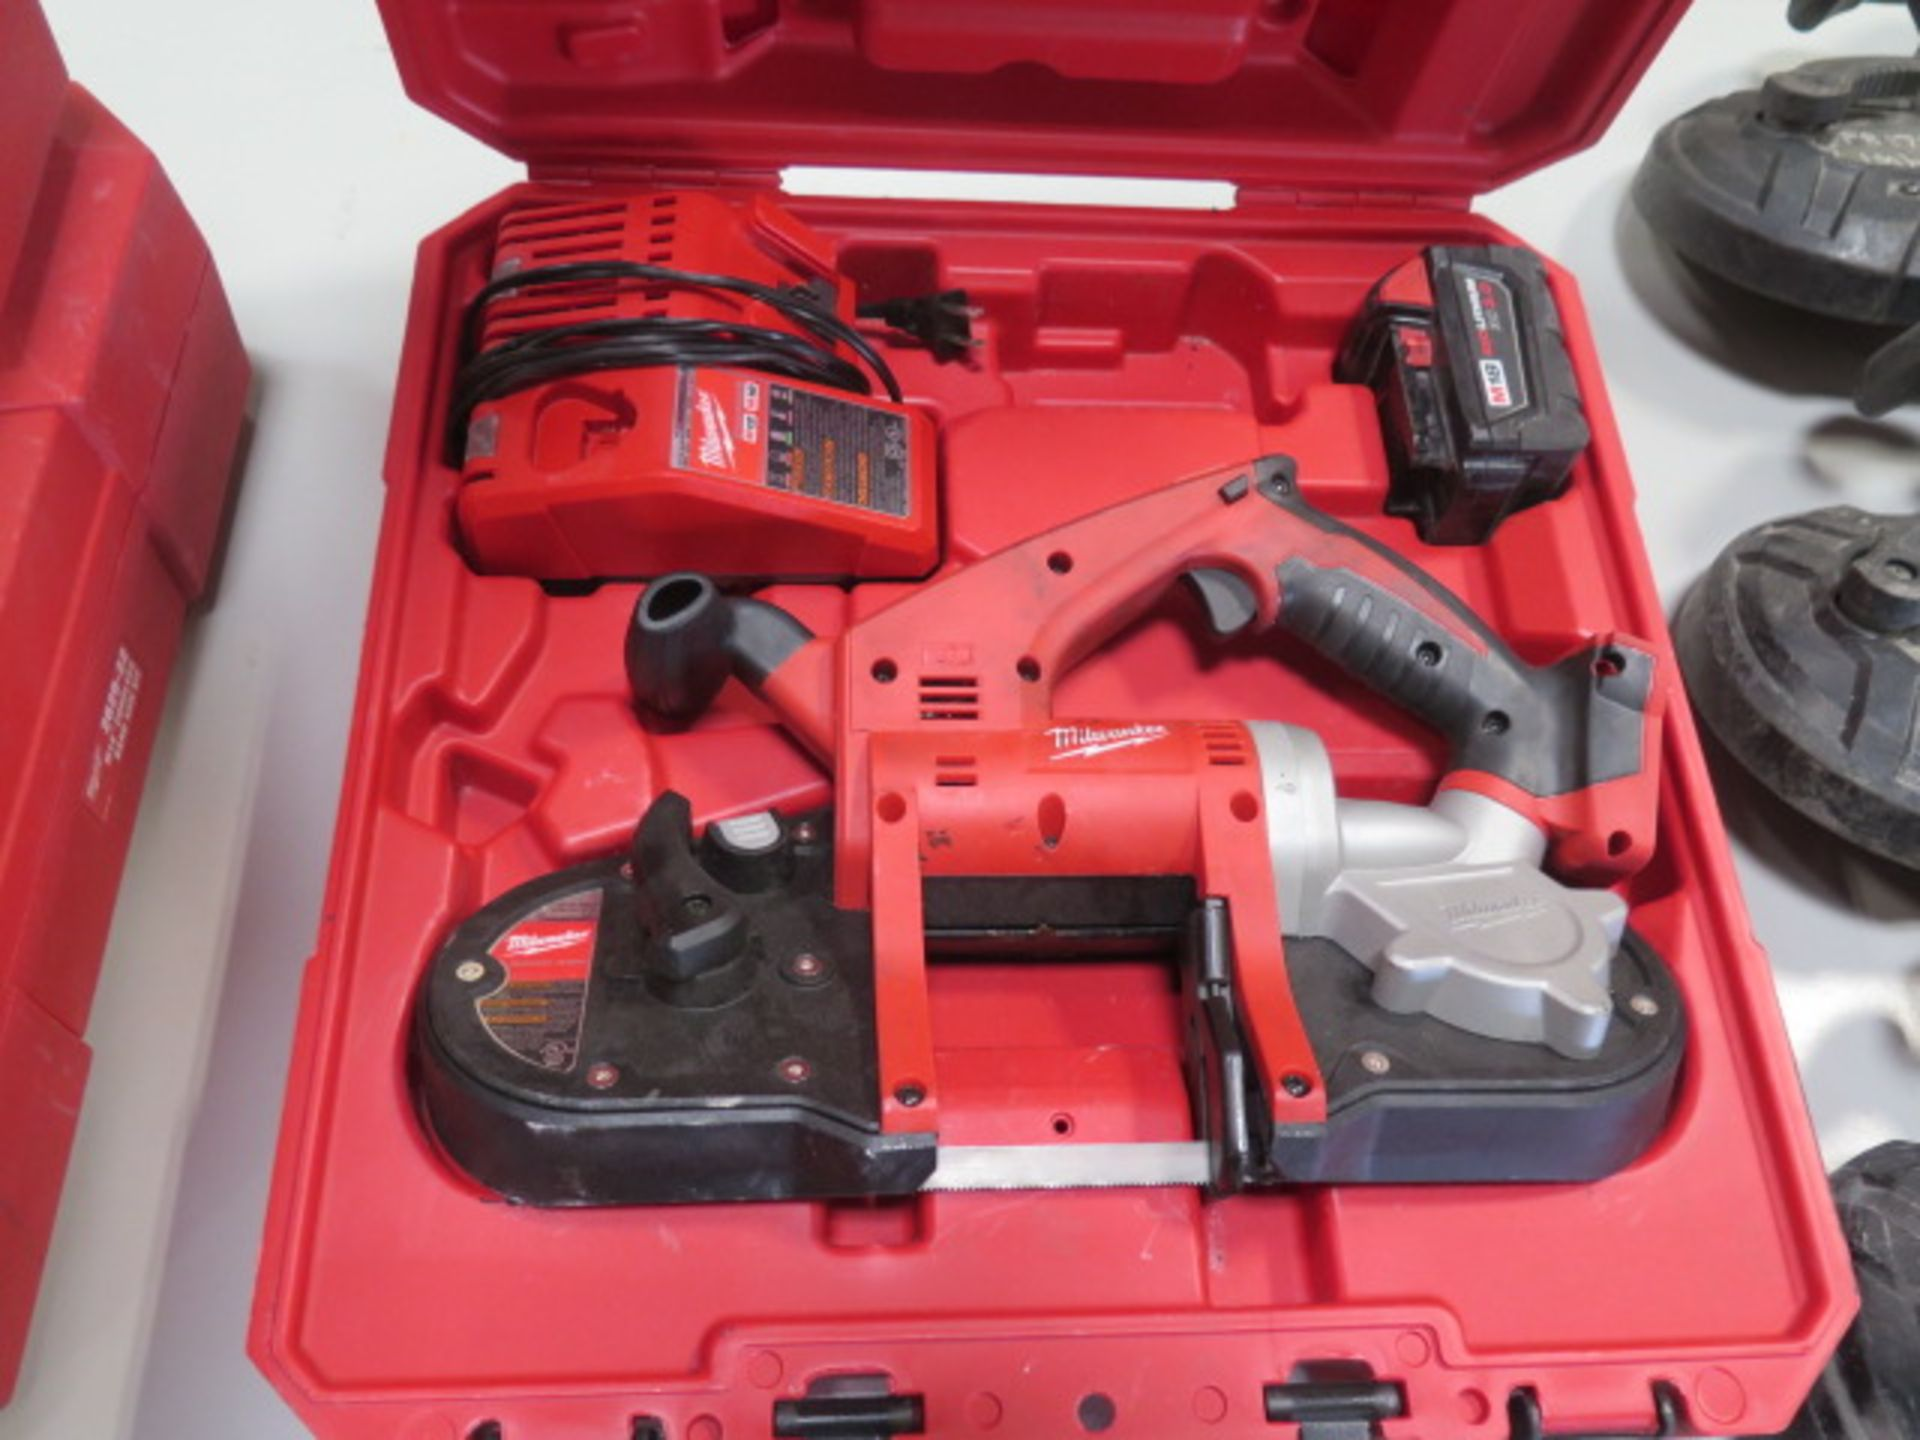 Milwaukee 18 Volt Compact Portable Band Saw Sets (2) (SOLD AS-IS - NO WARRANTY) - Image 7 of 10